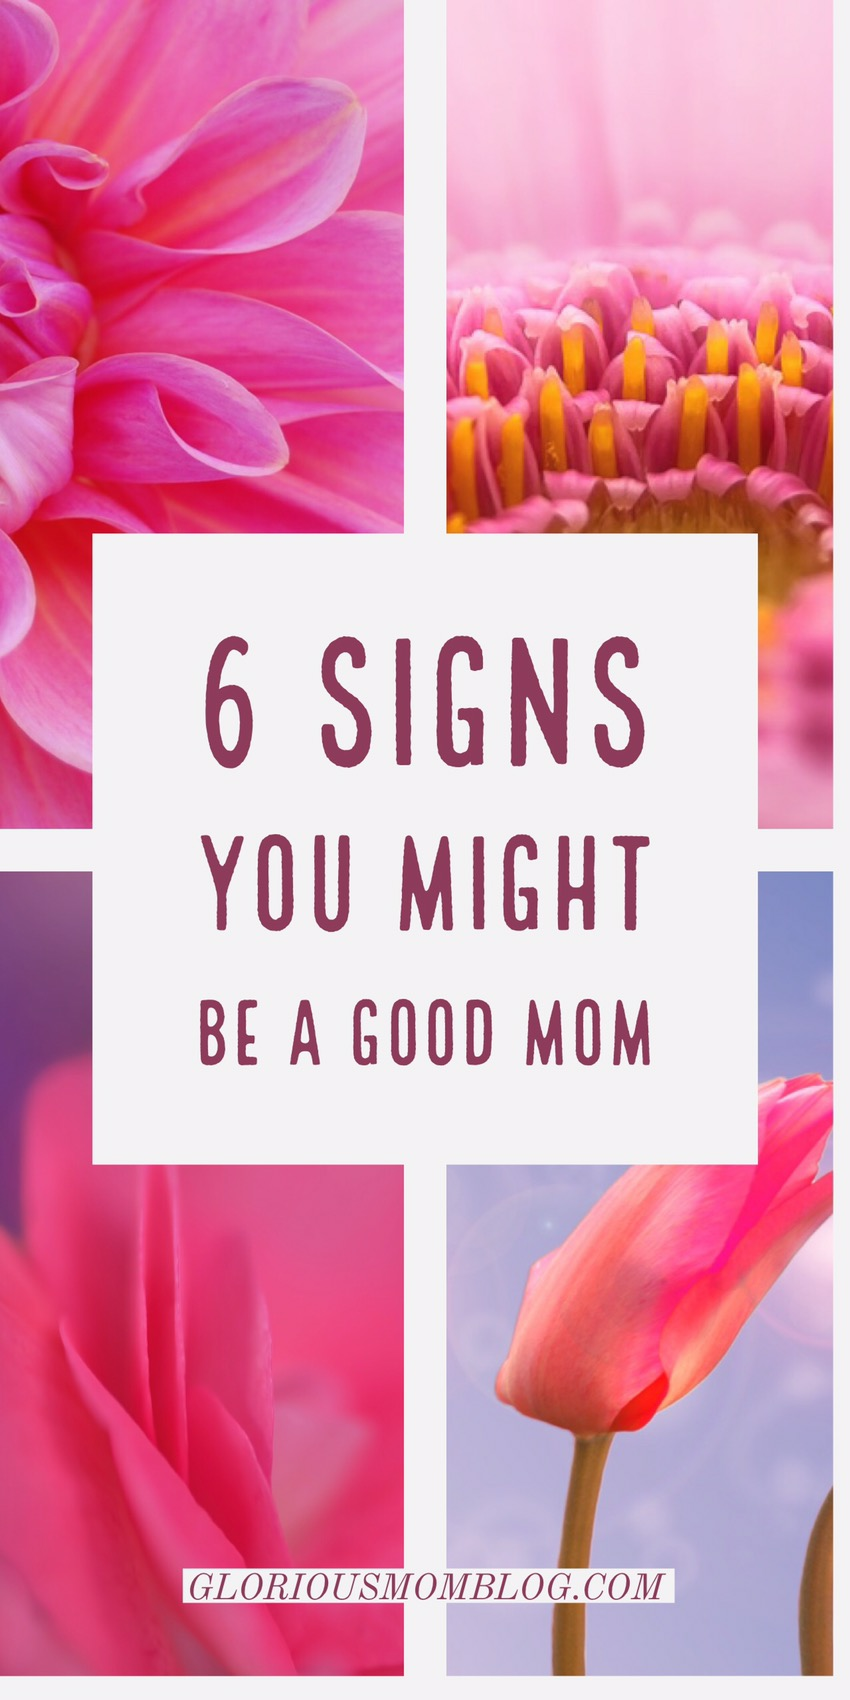 You Might Wanna Sit Down For This: 6 Signs You Might Be A Good Mom